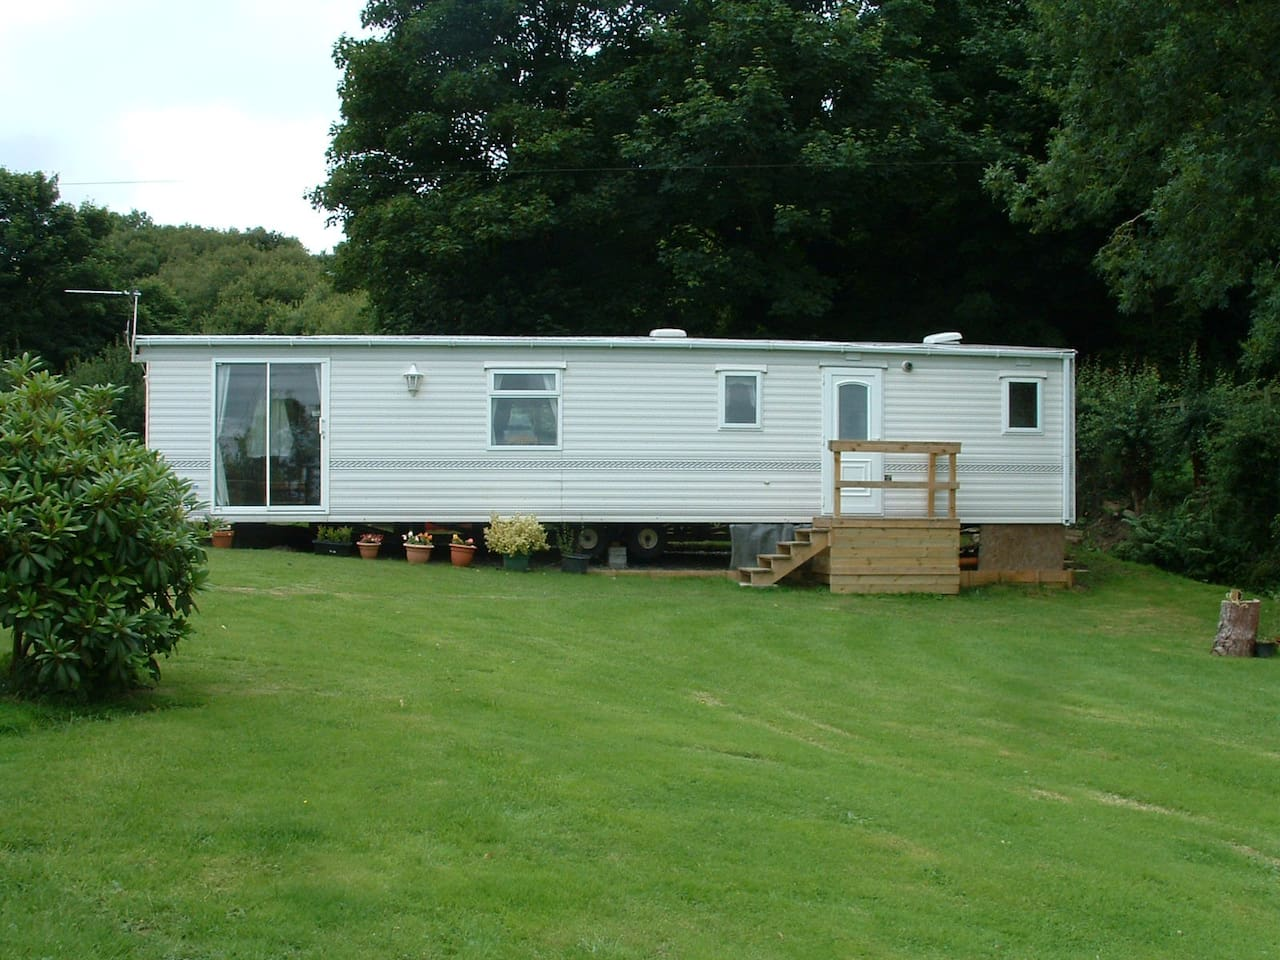 Spacious centrally heated, double glazed  mobile home set in its own grounds with scenic views.